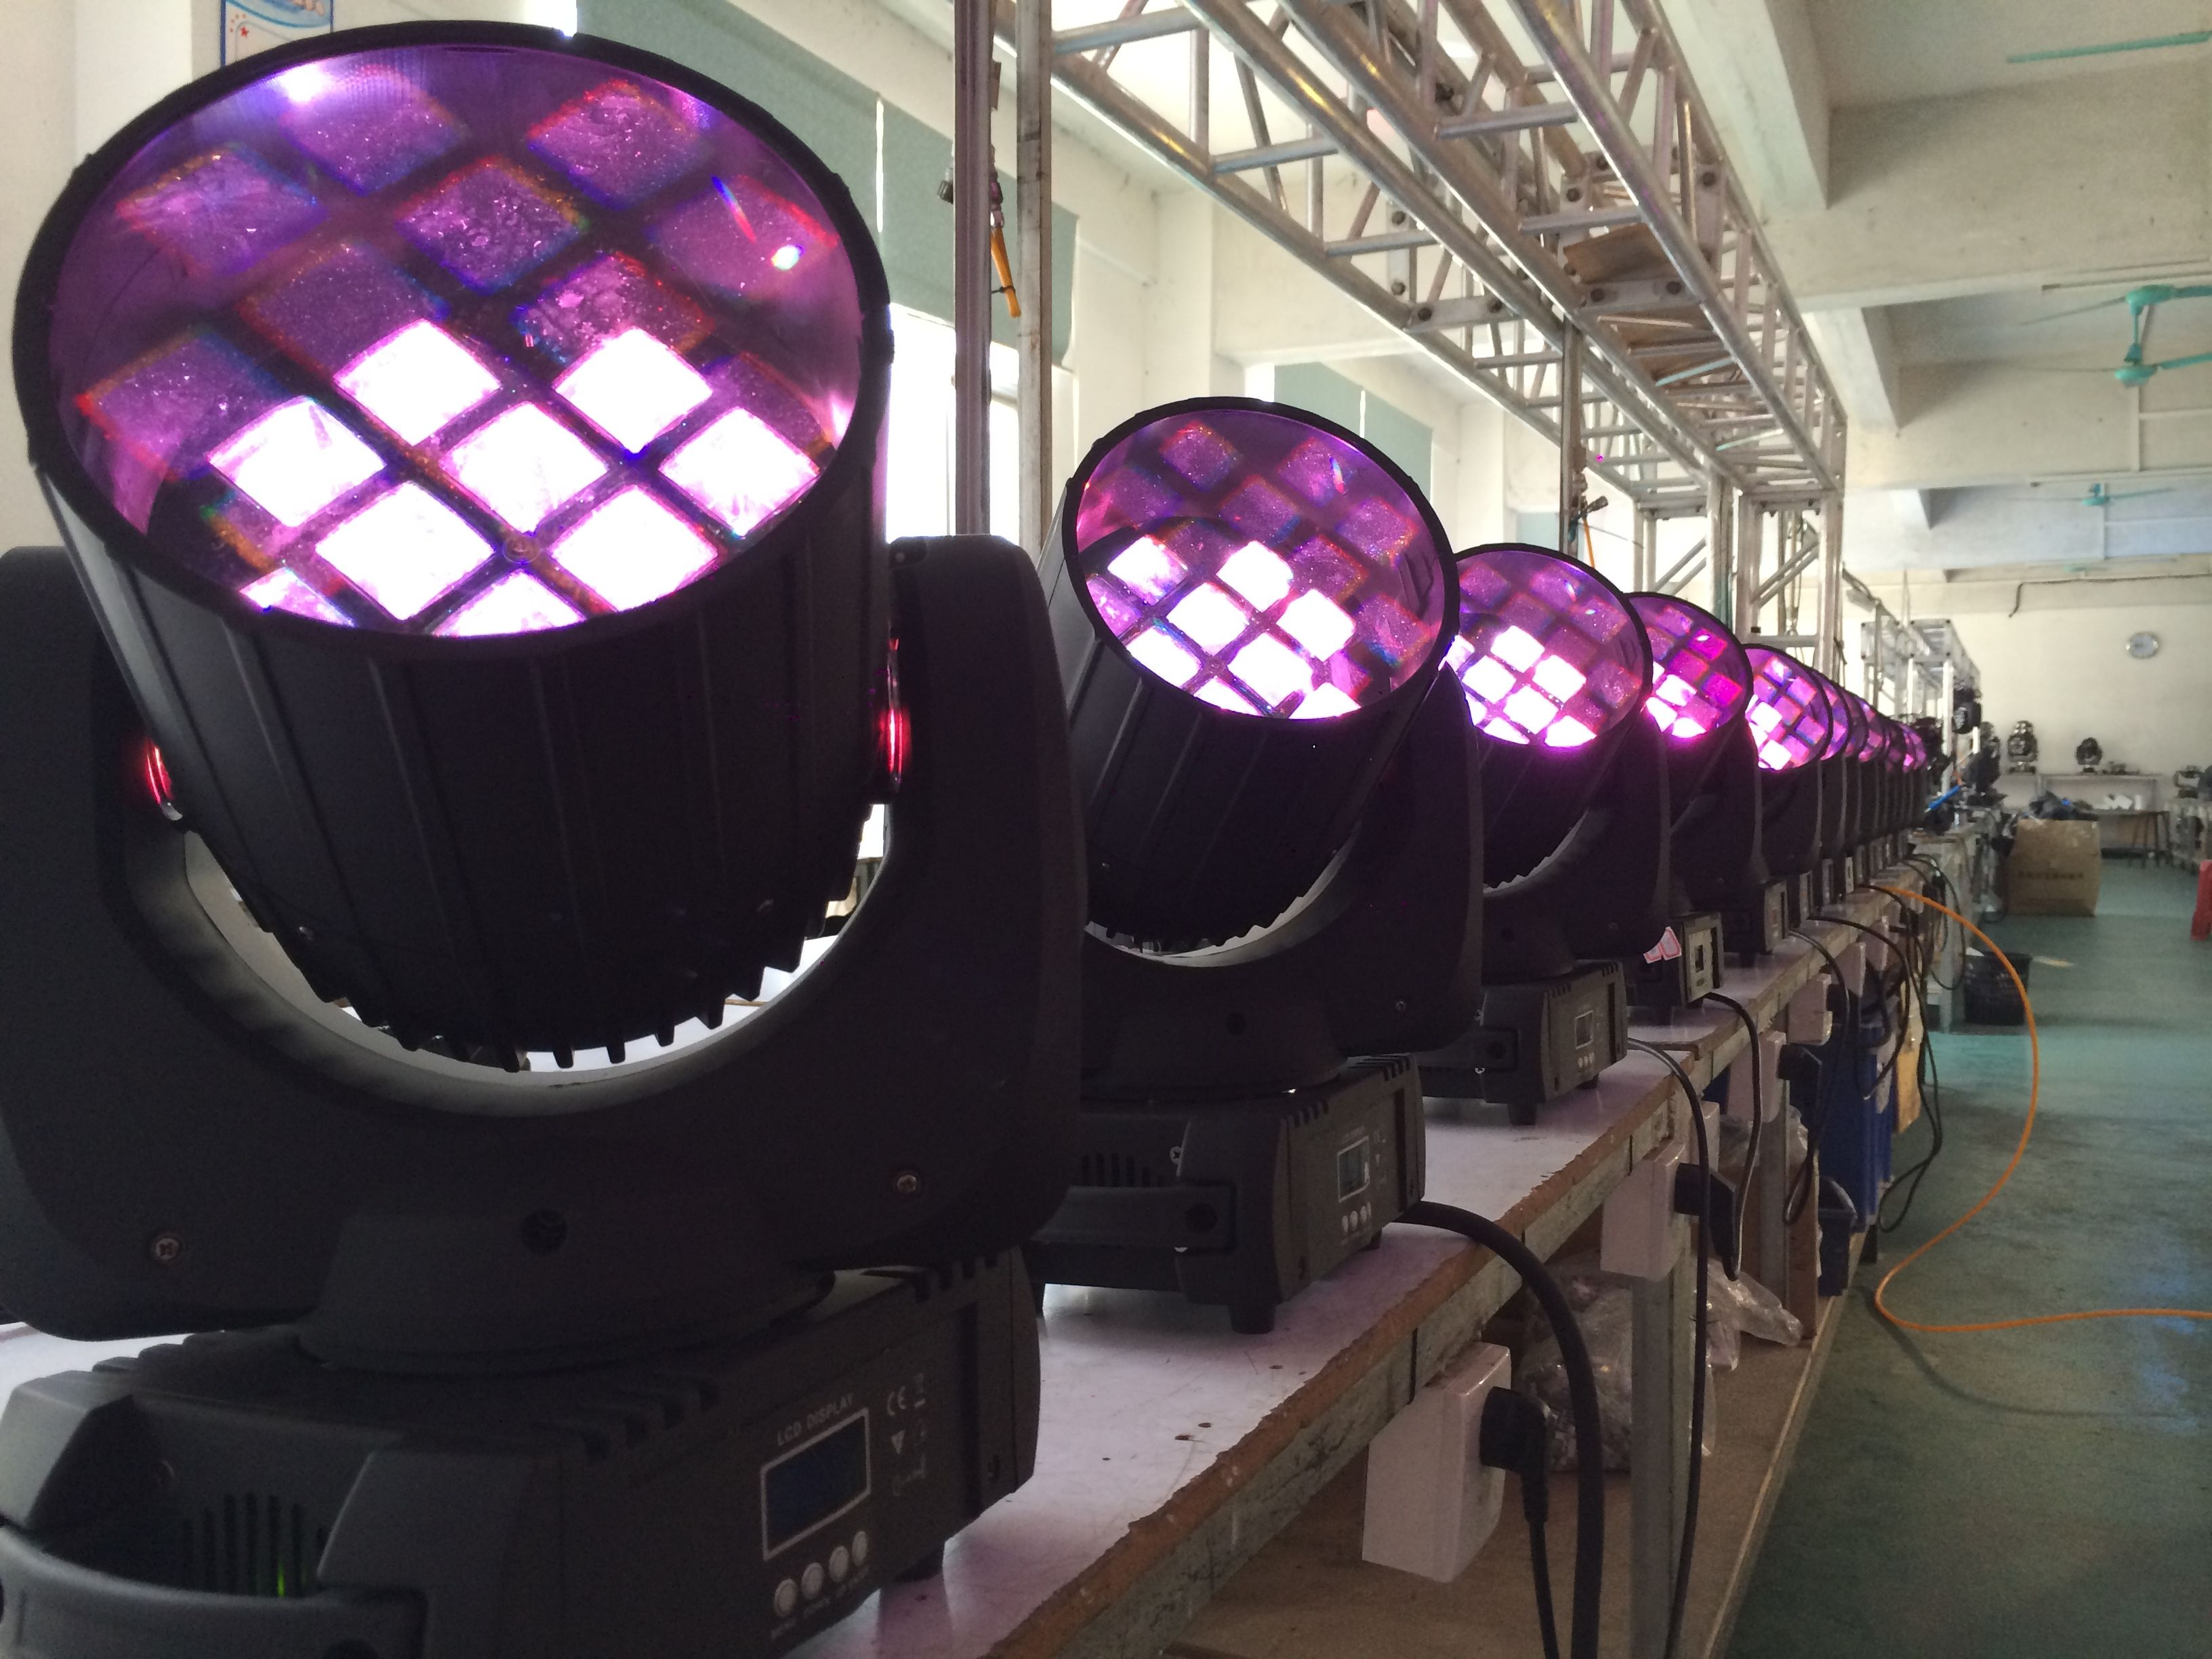 12pcs Rgbw 4 In 1 10w Cree Led Moving Head Light Https Www Facebook Com Wavelighting1 Cree Led Headlights Cree